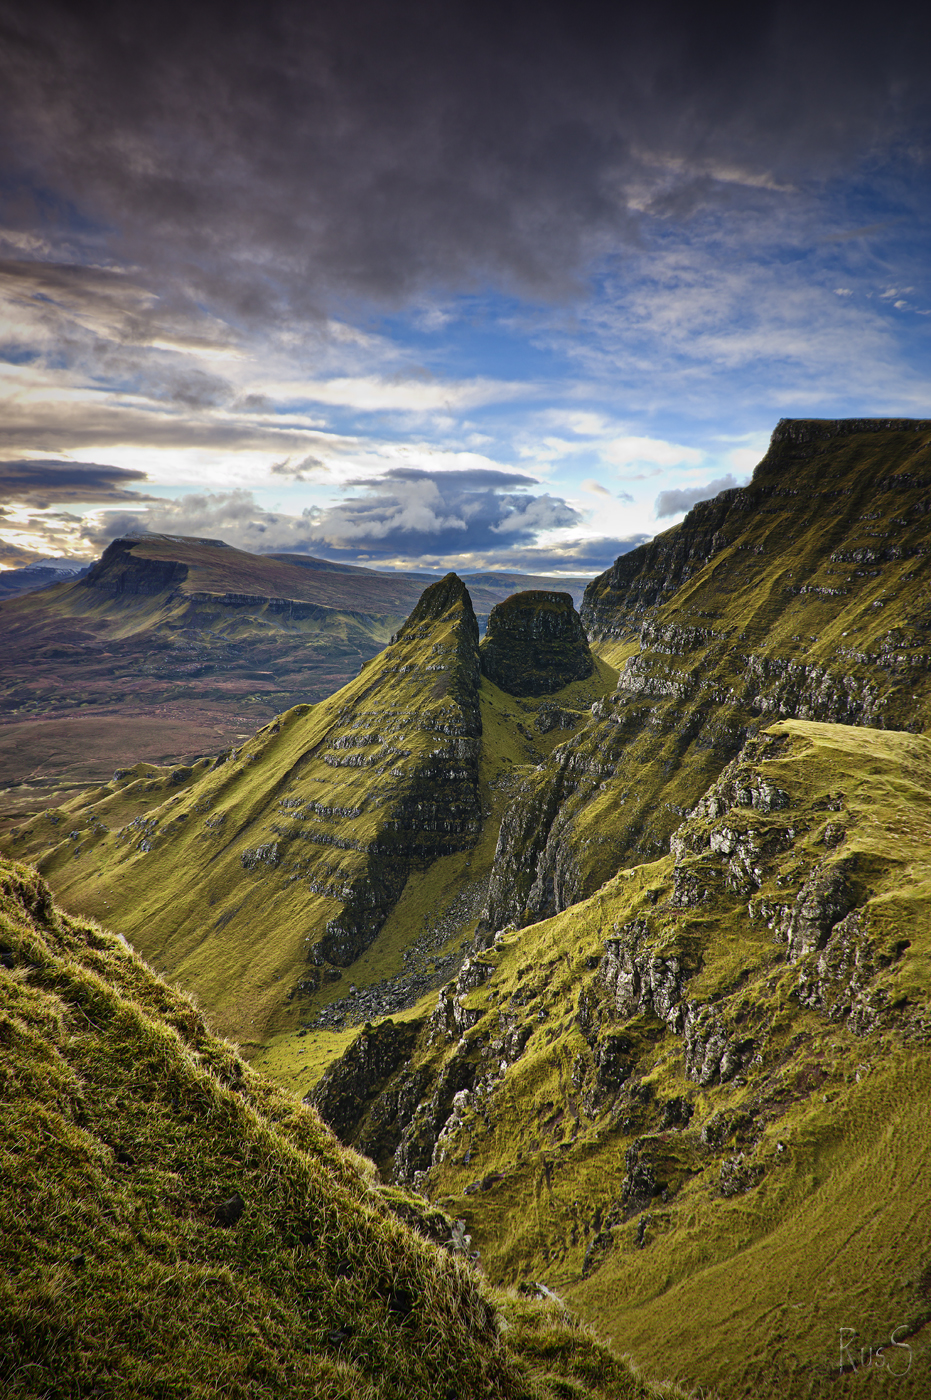 SG724 2014 01 29 Druim an Ruma Trotternish Ridge #2.jpg